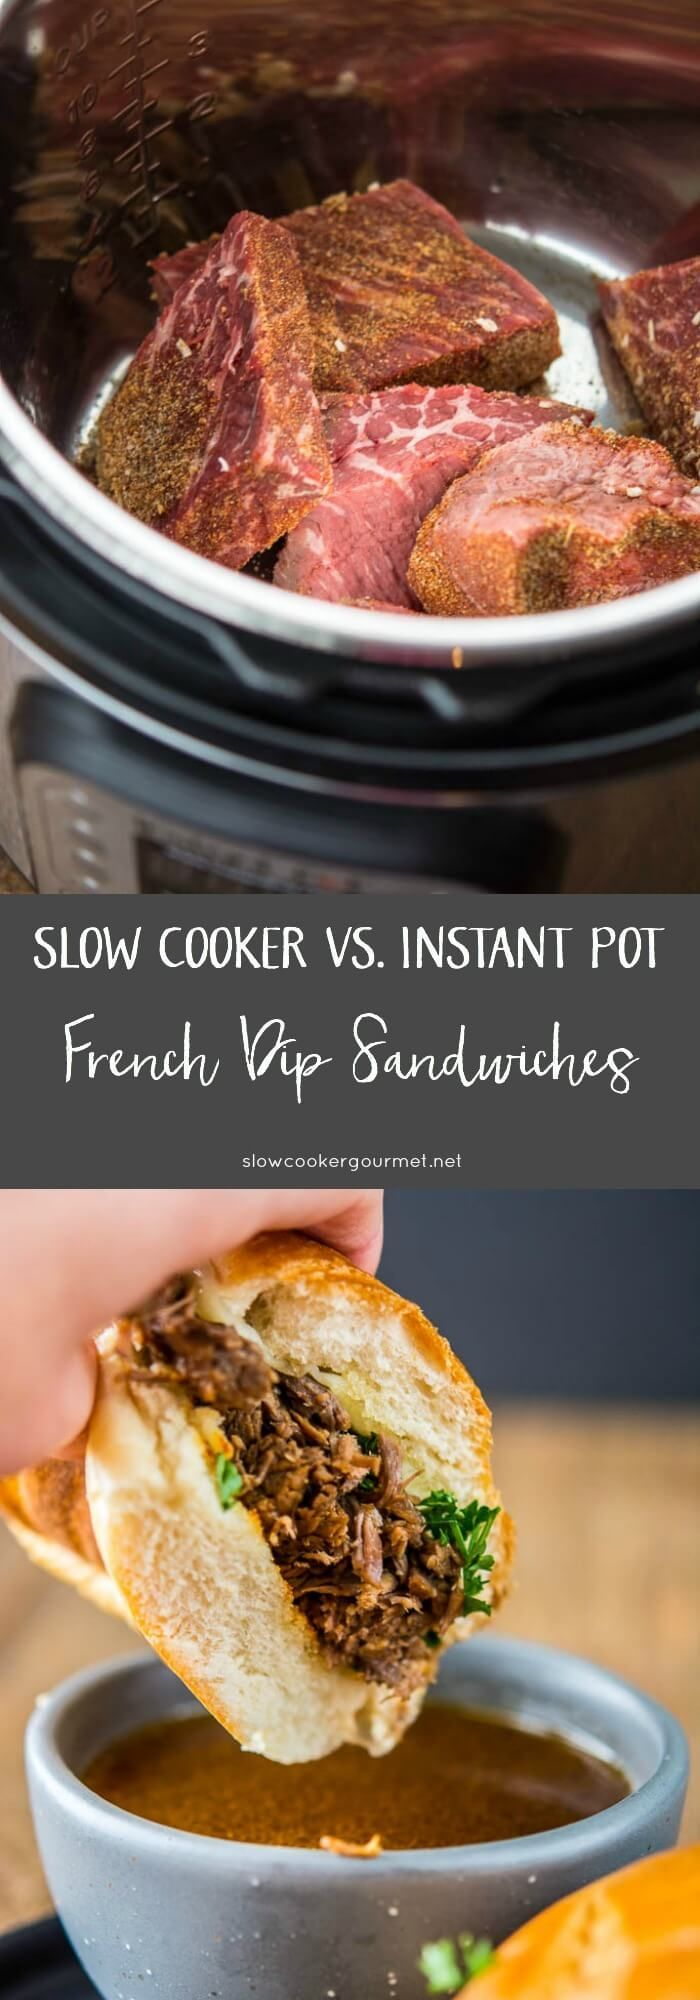 Slow Cooker vs. Instant Pot French Dip Sandwiches